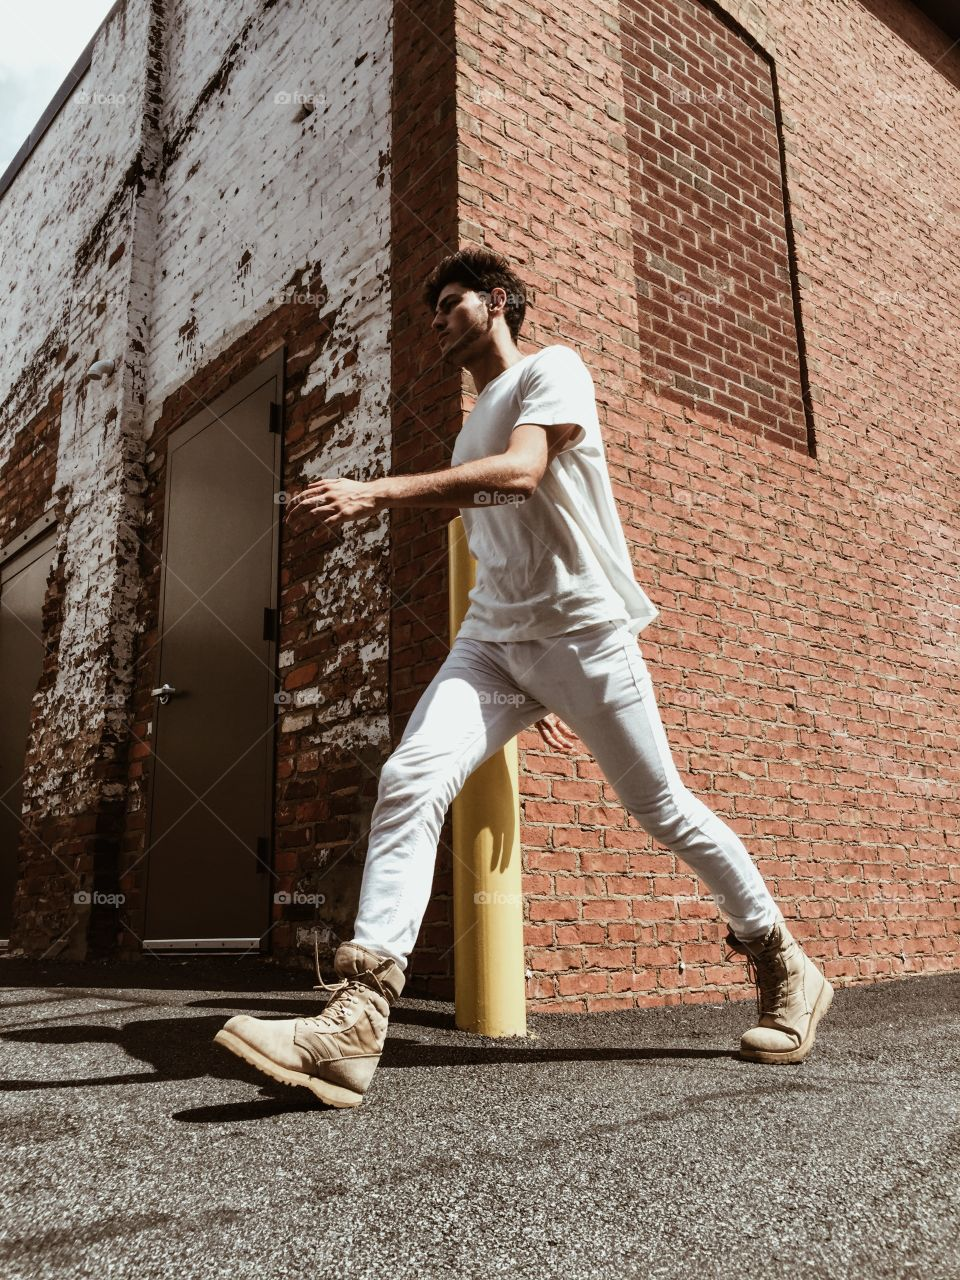 A young man walking down the street wearing white clothes.  Cool, urban city vibe.